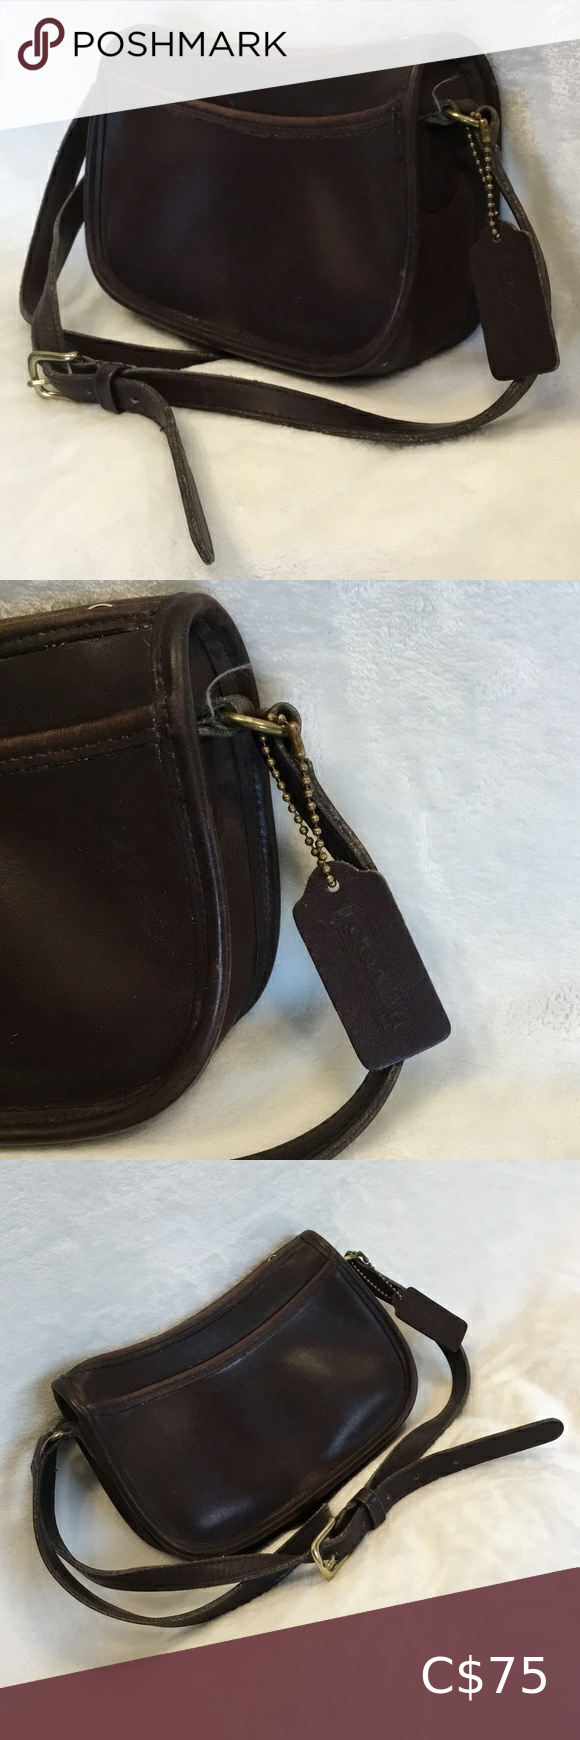 Coach genuine leather crossbody bag